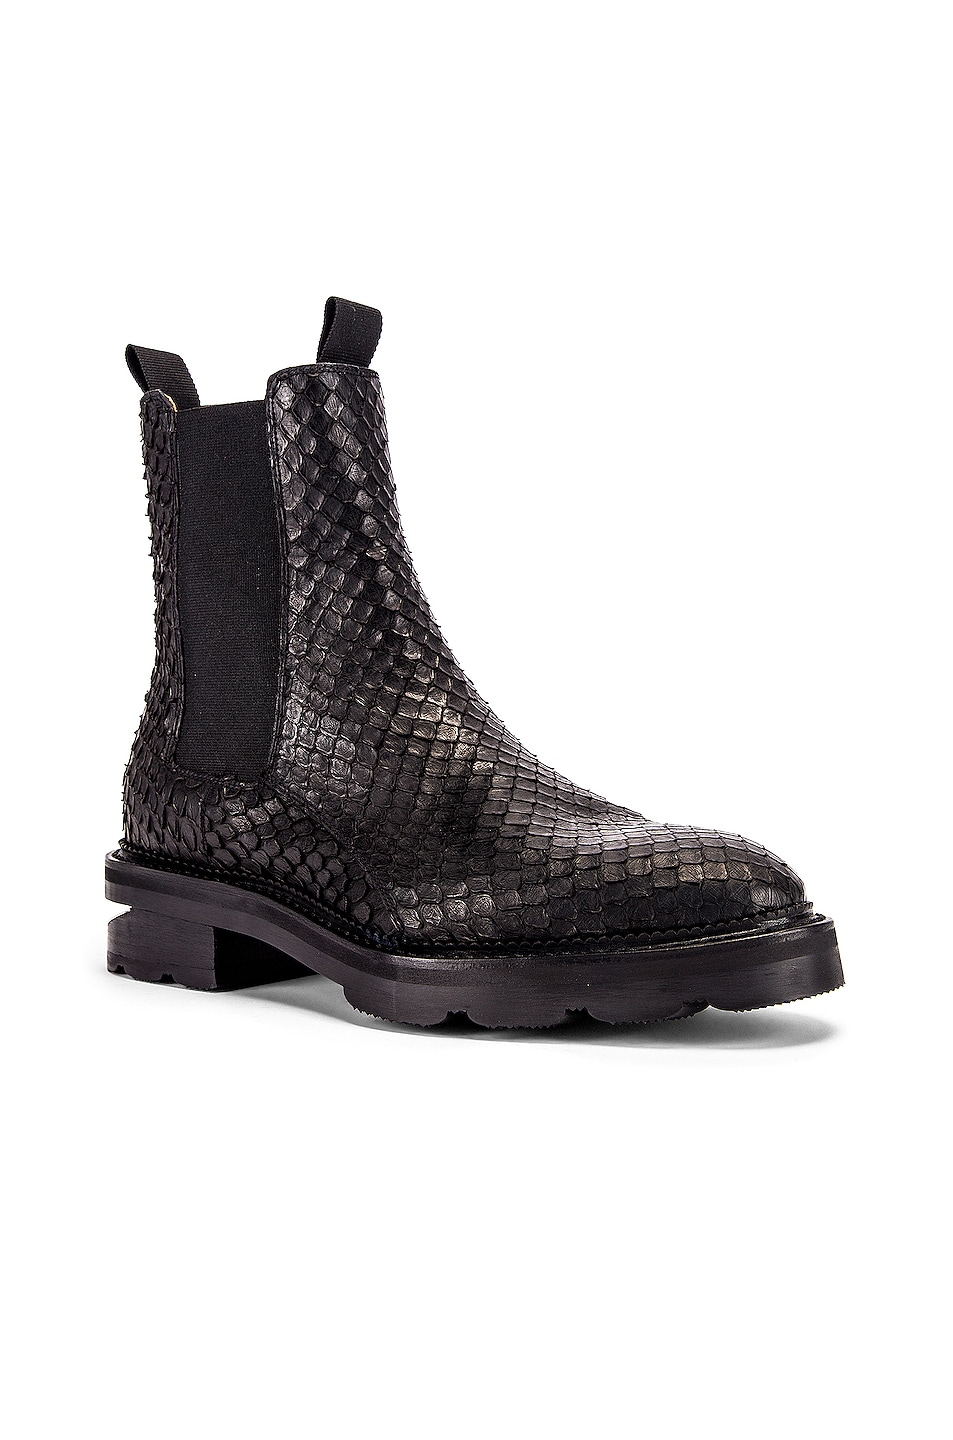 Image 2 of Alexander Wang Andy Anaconda Boot in Black